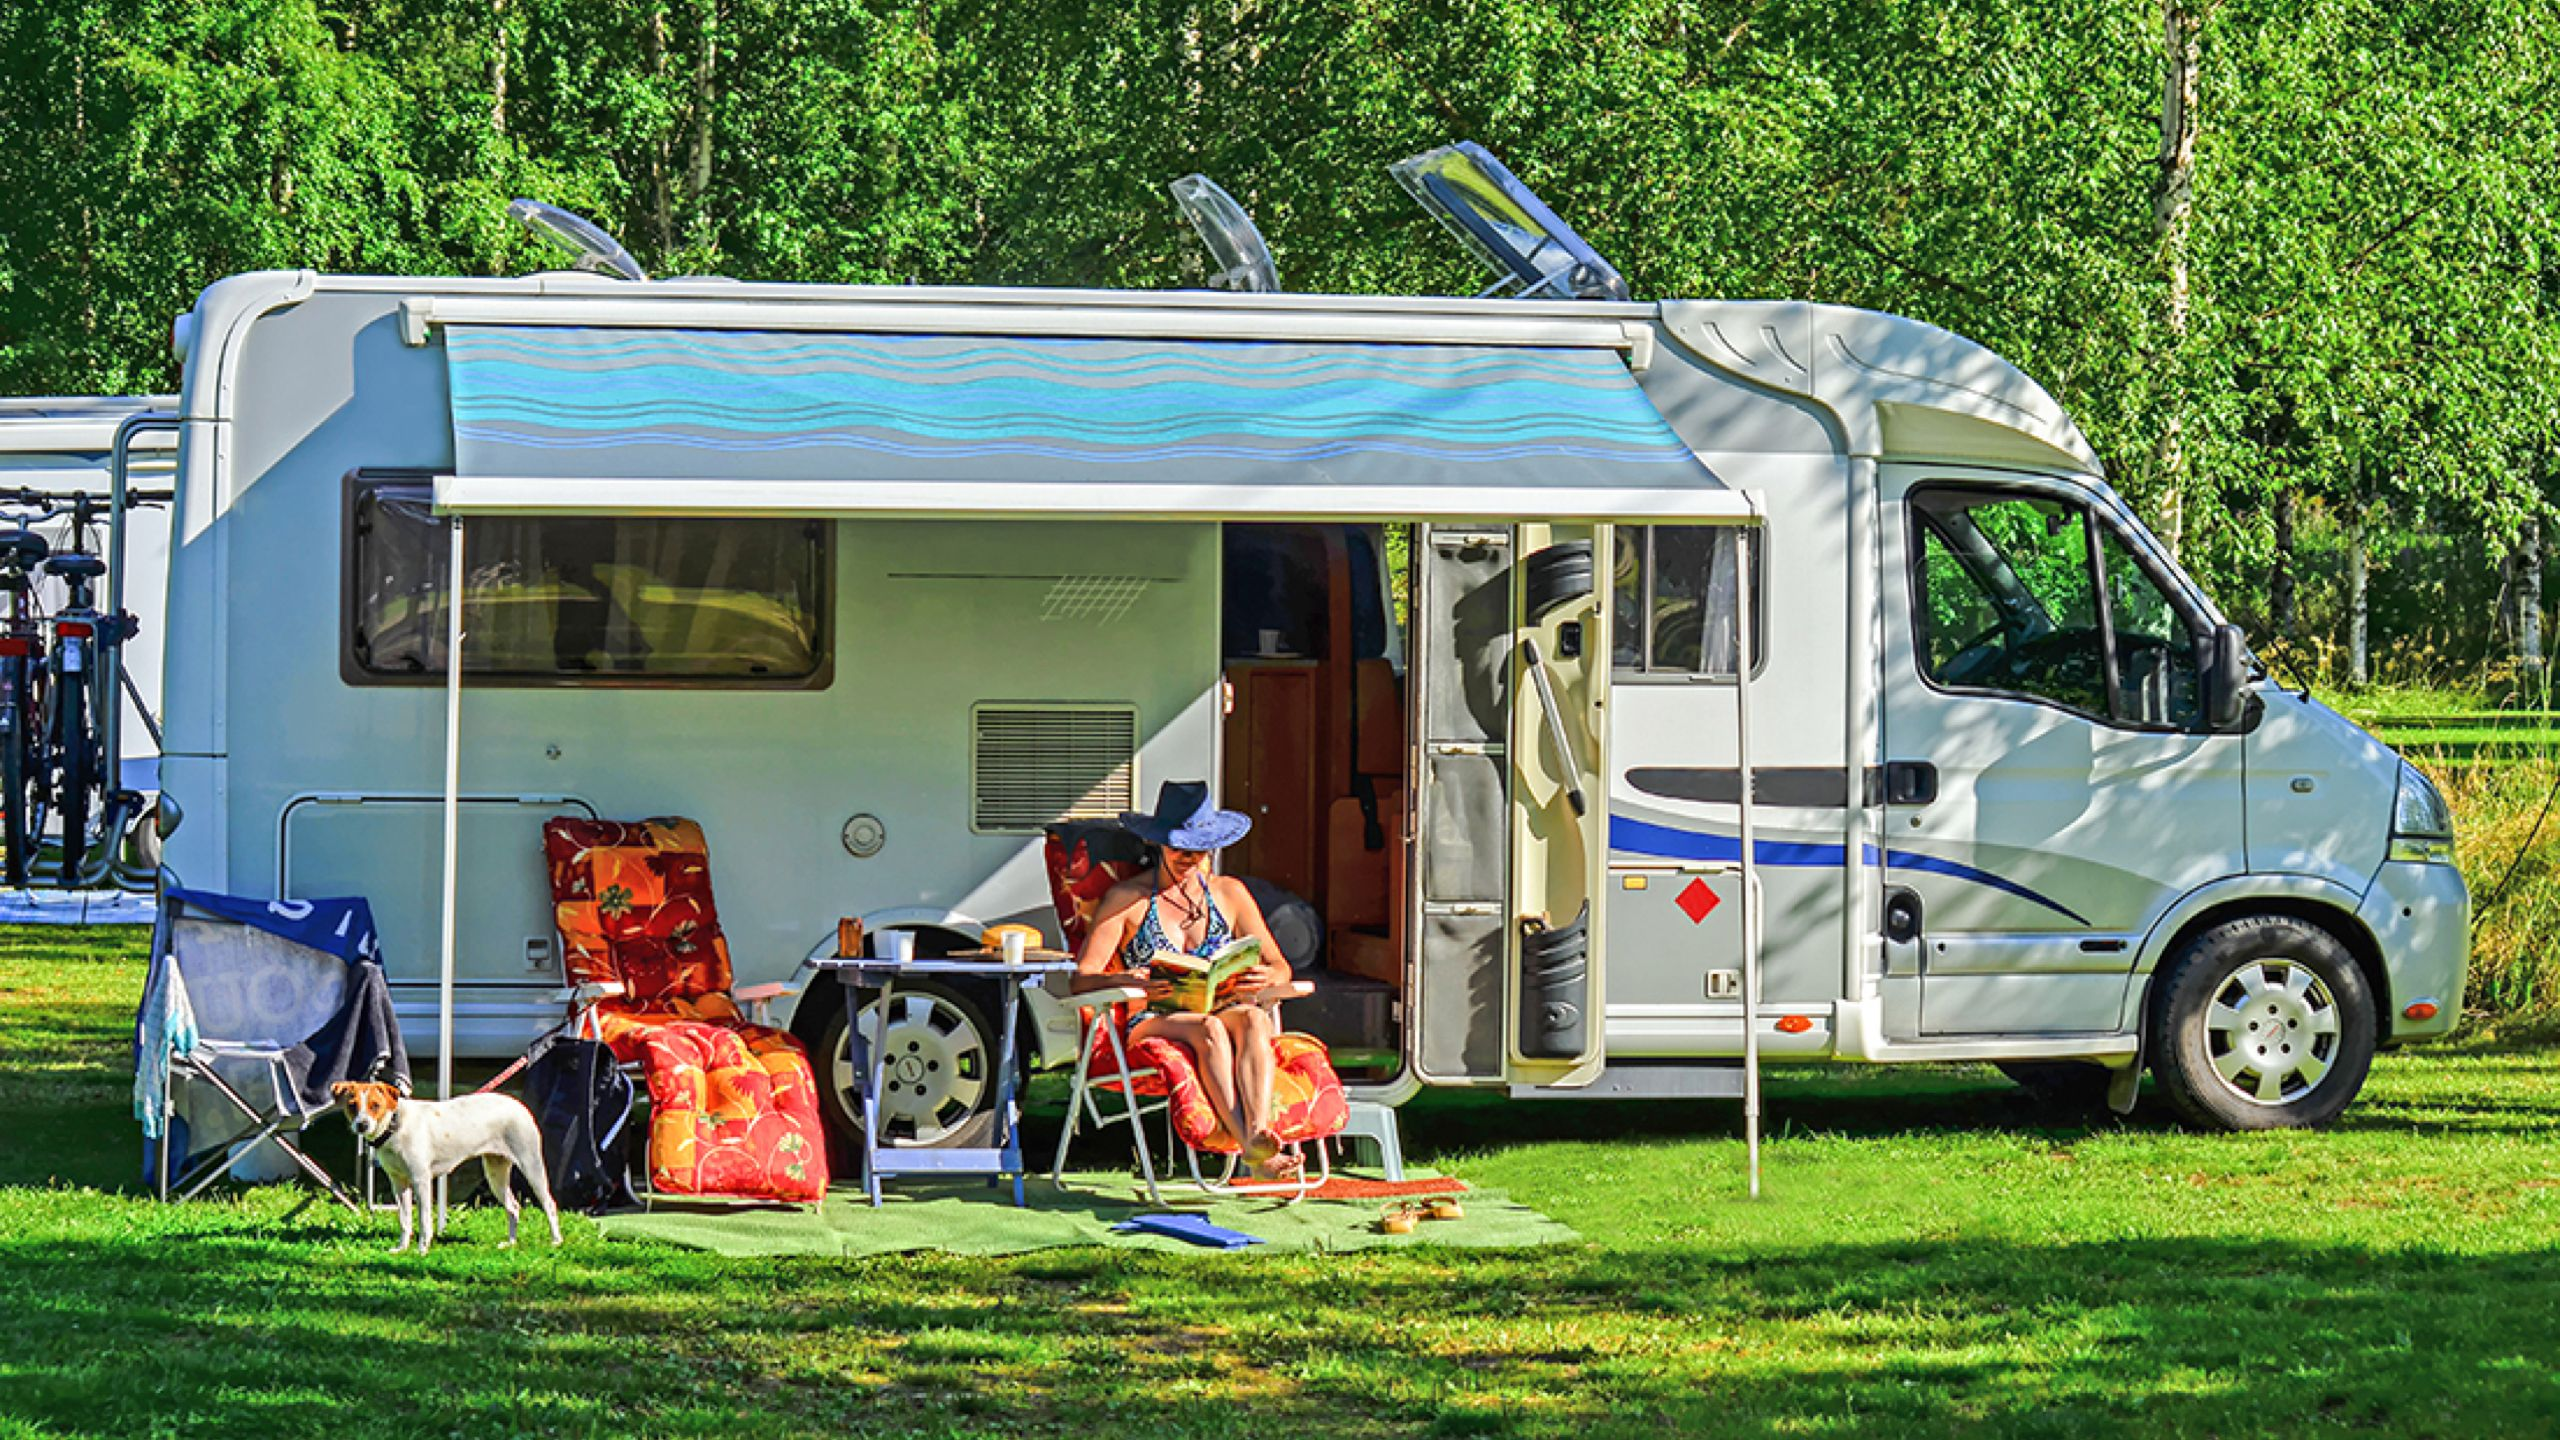 RV camping with a pet